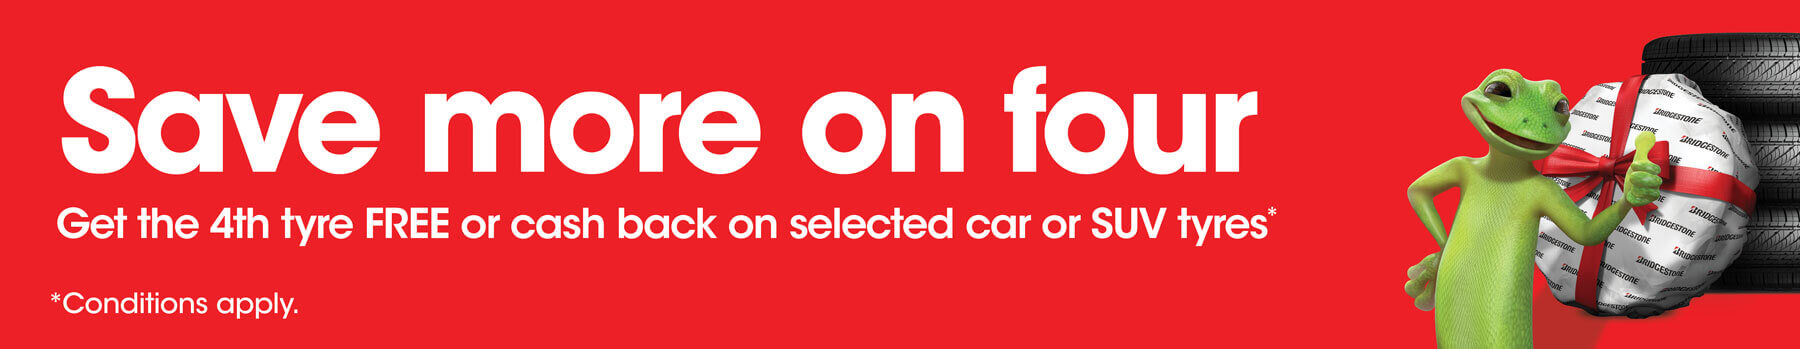 Save more on four, get the 4th tyre FREE or cash back on selected car or SUV tyres